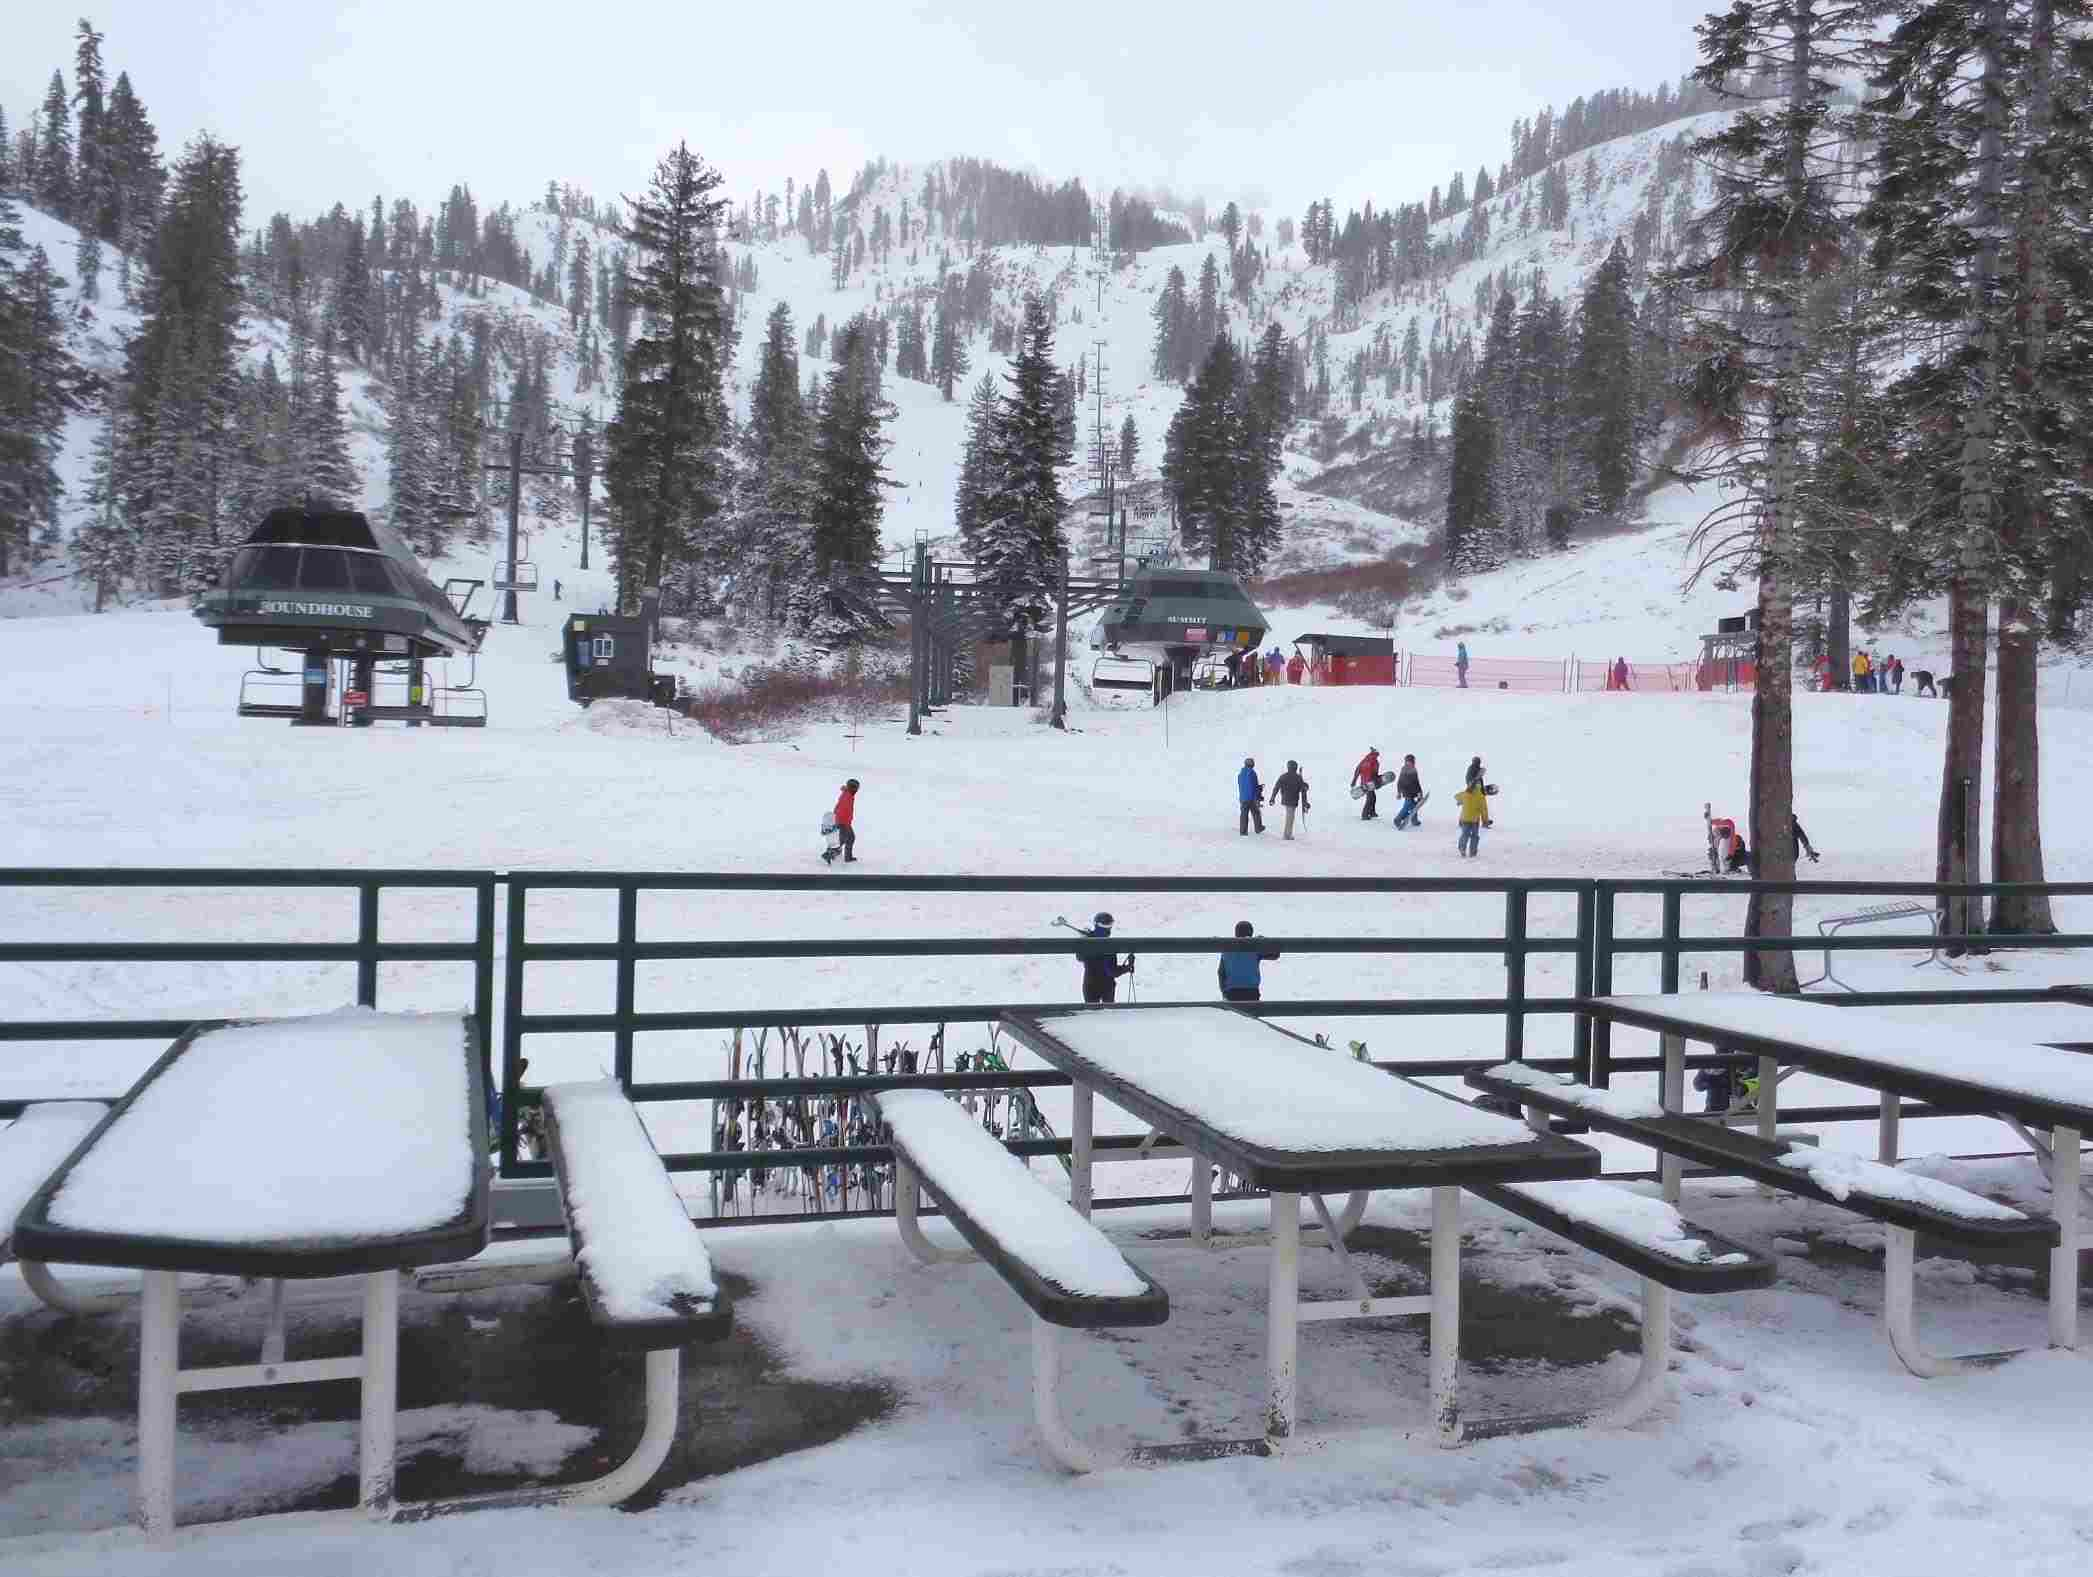 Alpine Meadows' snowy base